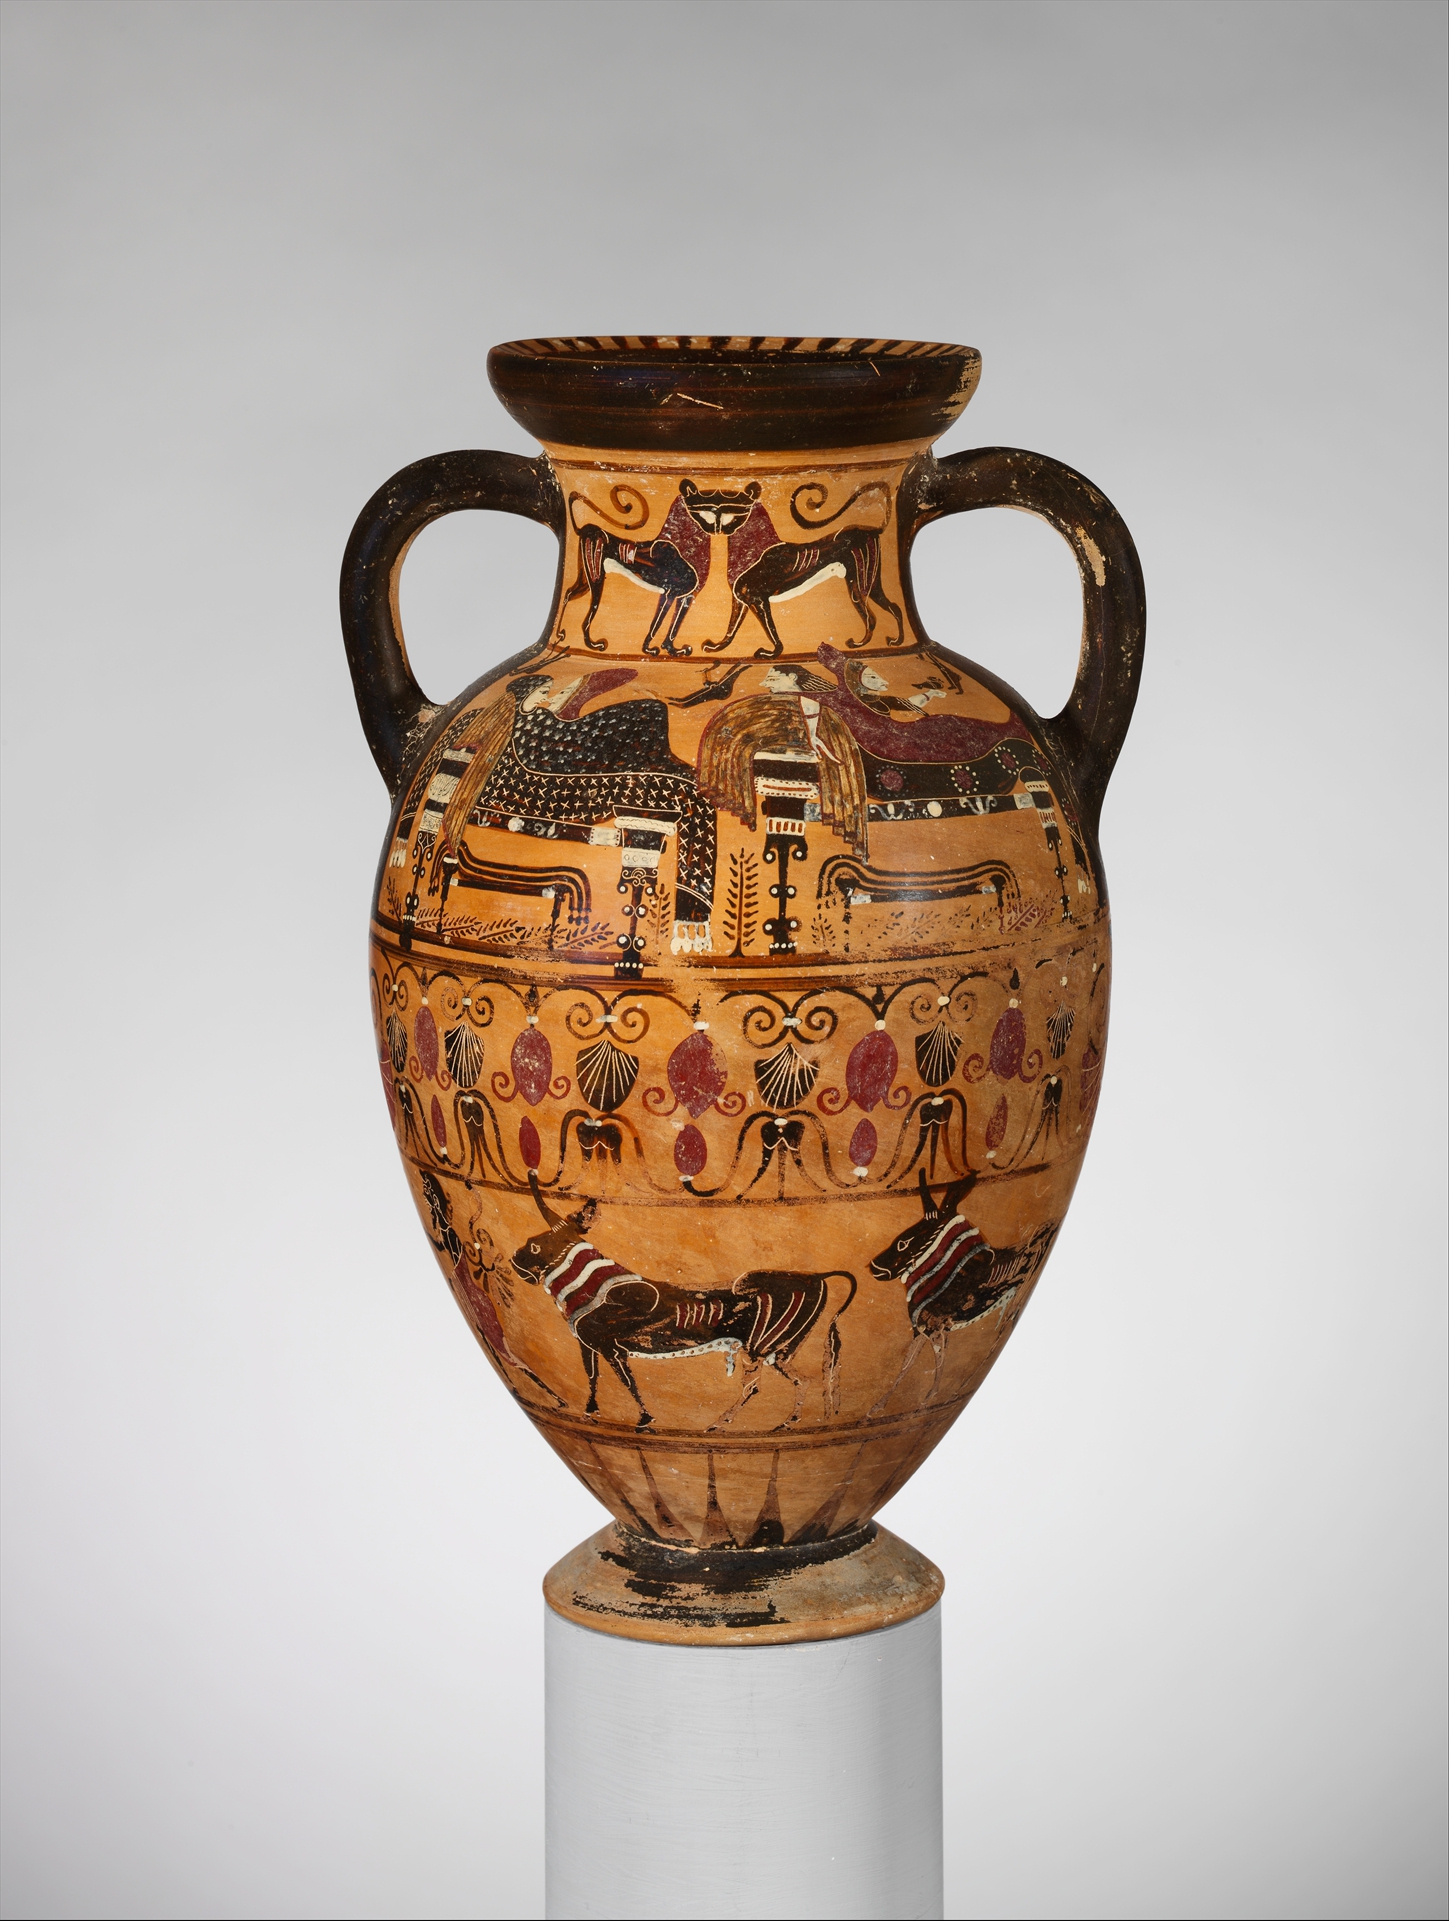 Etruscan Neck-Amphora, circa 540 BCE. Part of the collection of the Metropolitan Museum of Art.